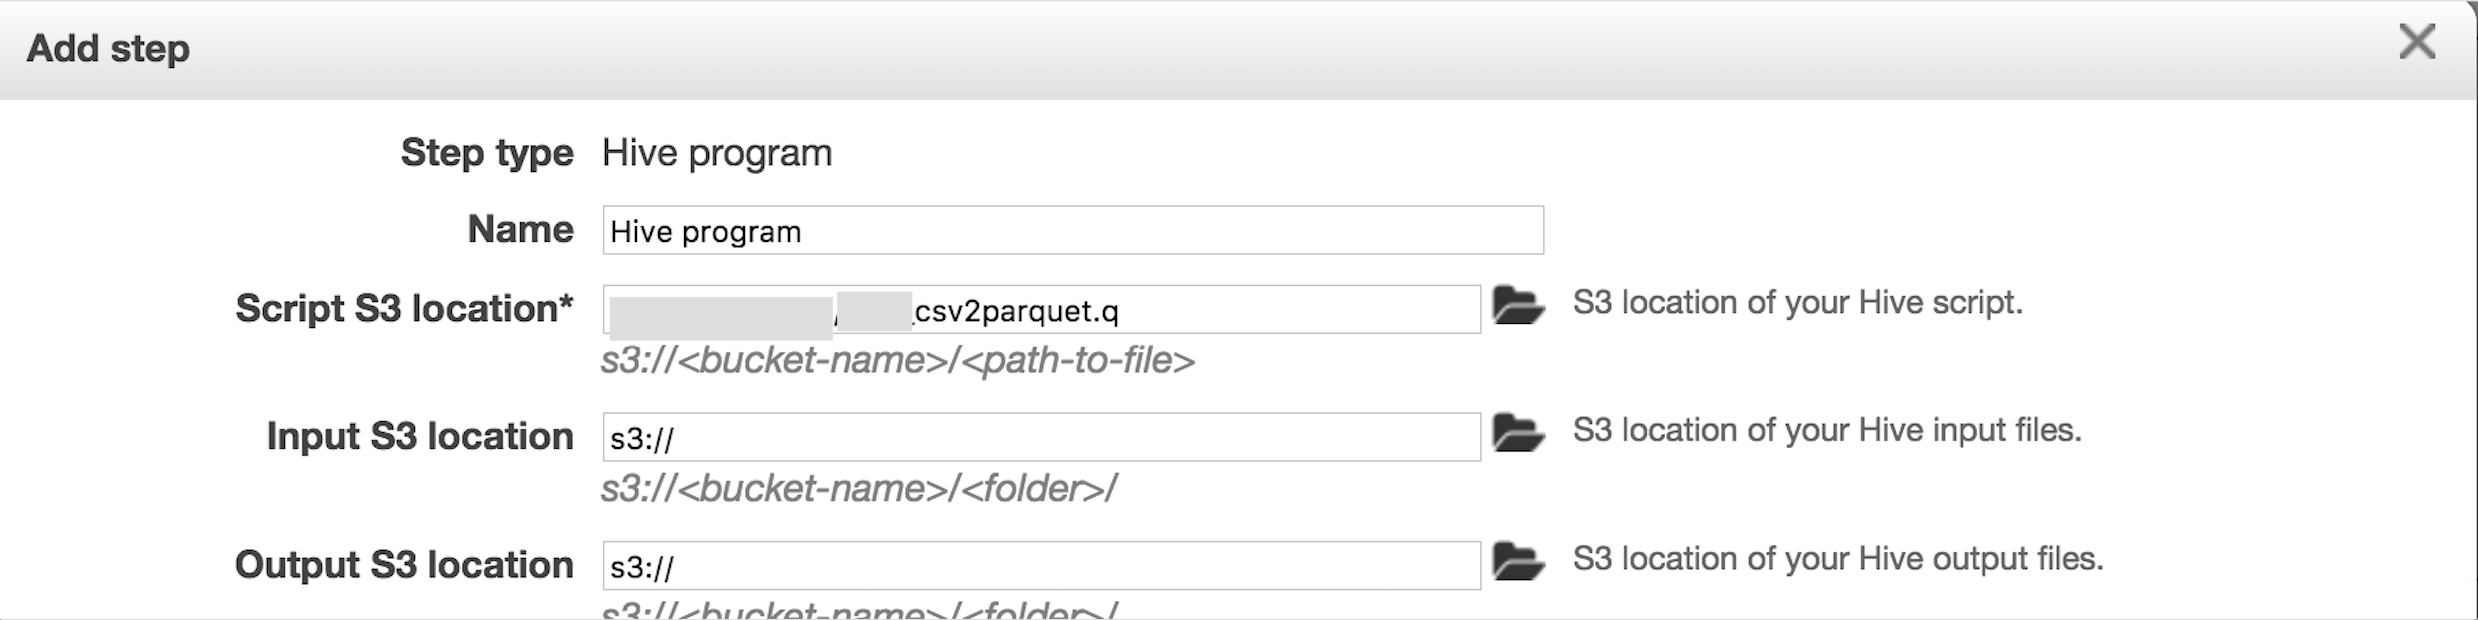 Convert CSV to Parquet using Hive on AWS EMR - Powerupcloud